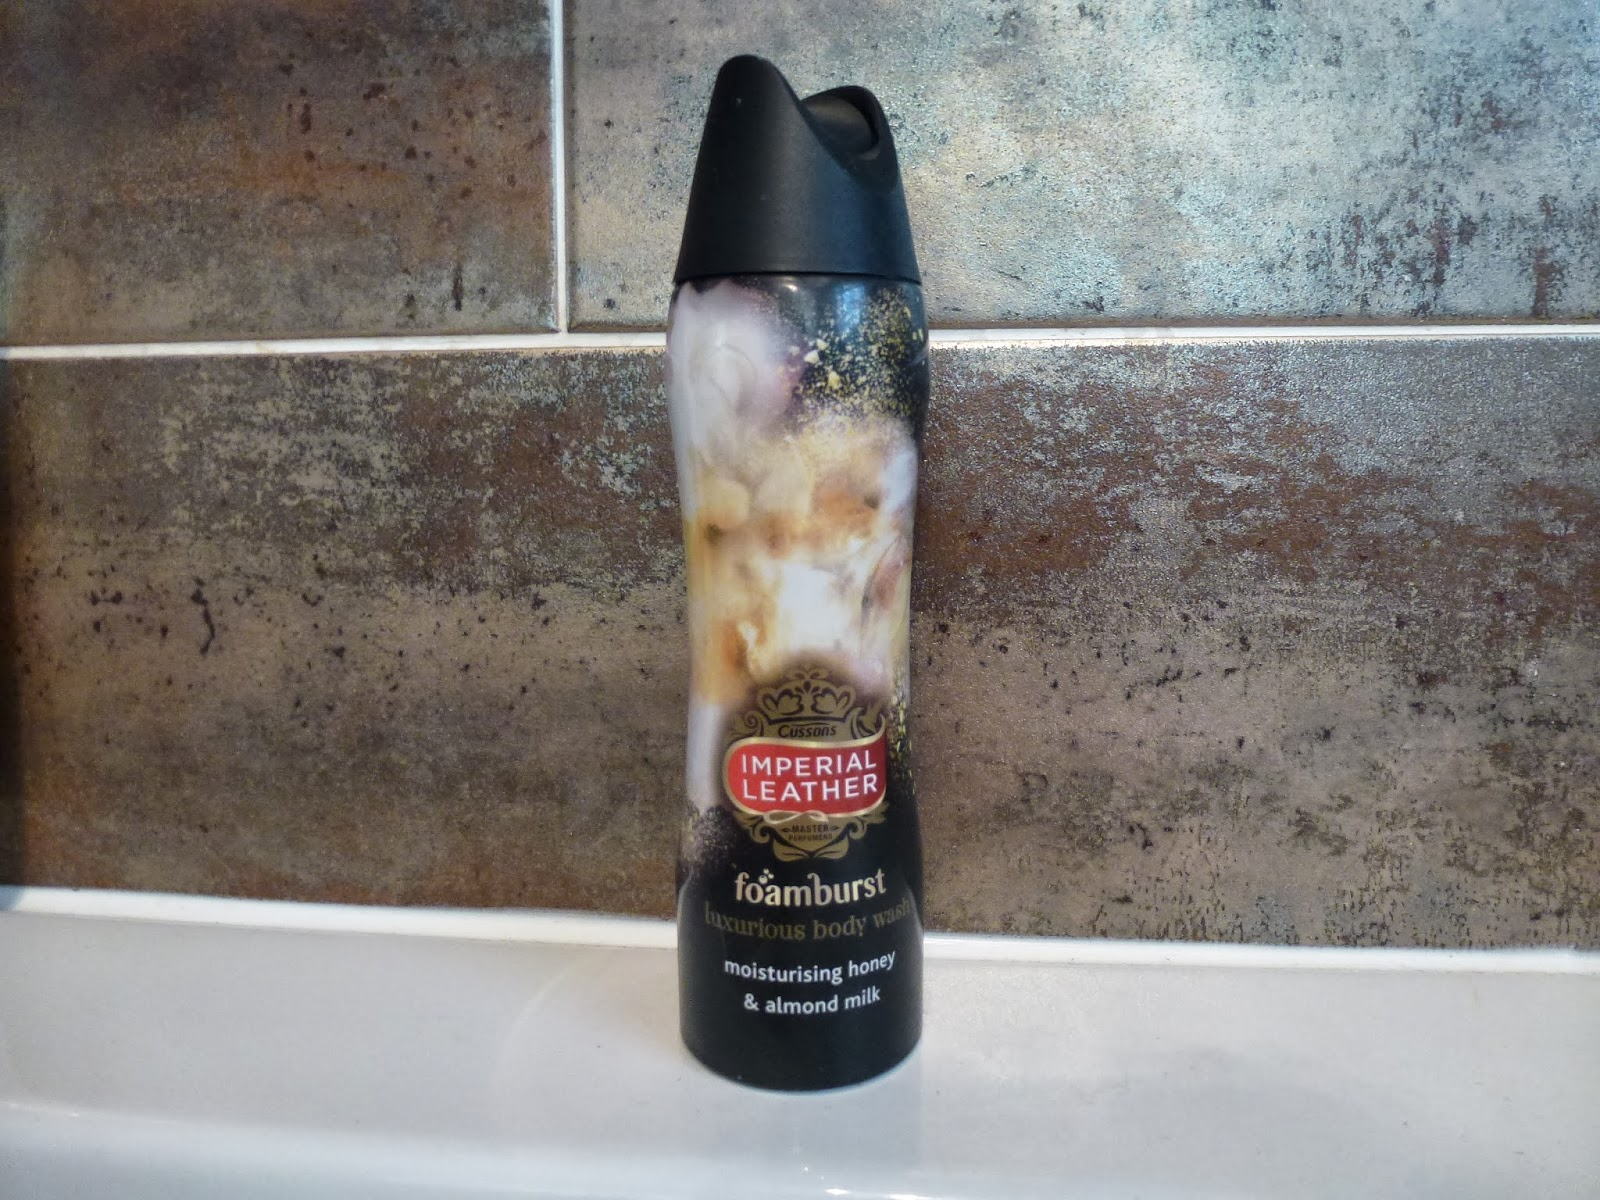 imperial-leather-foamburst-bodywash-review